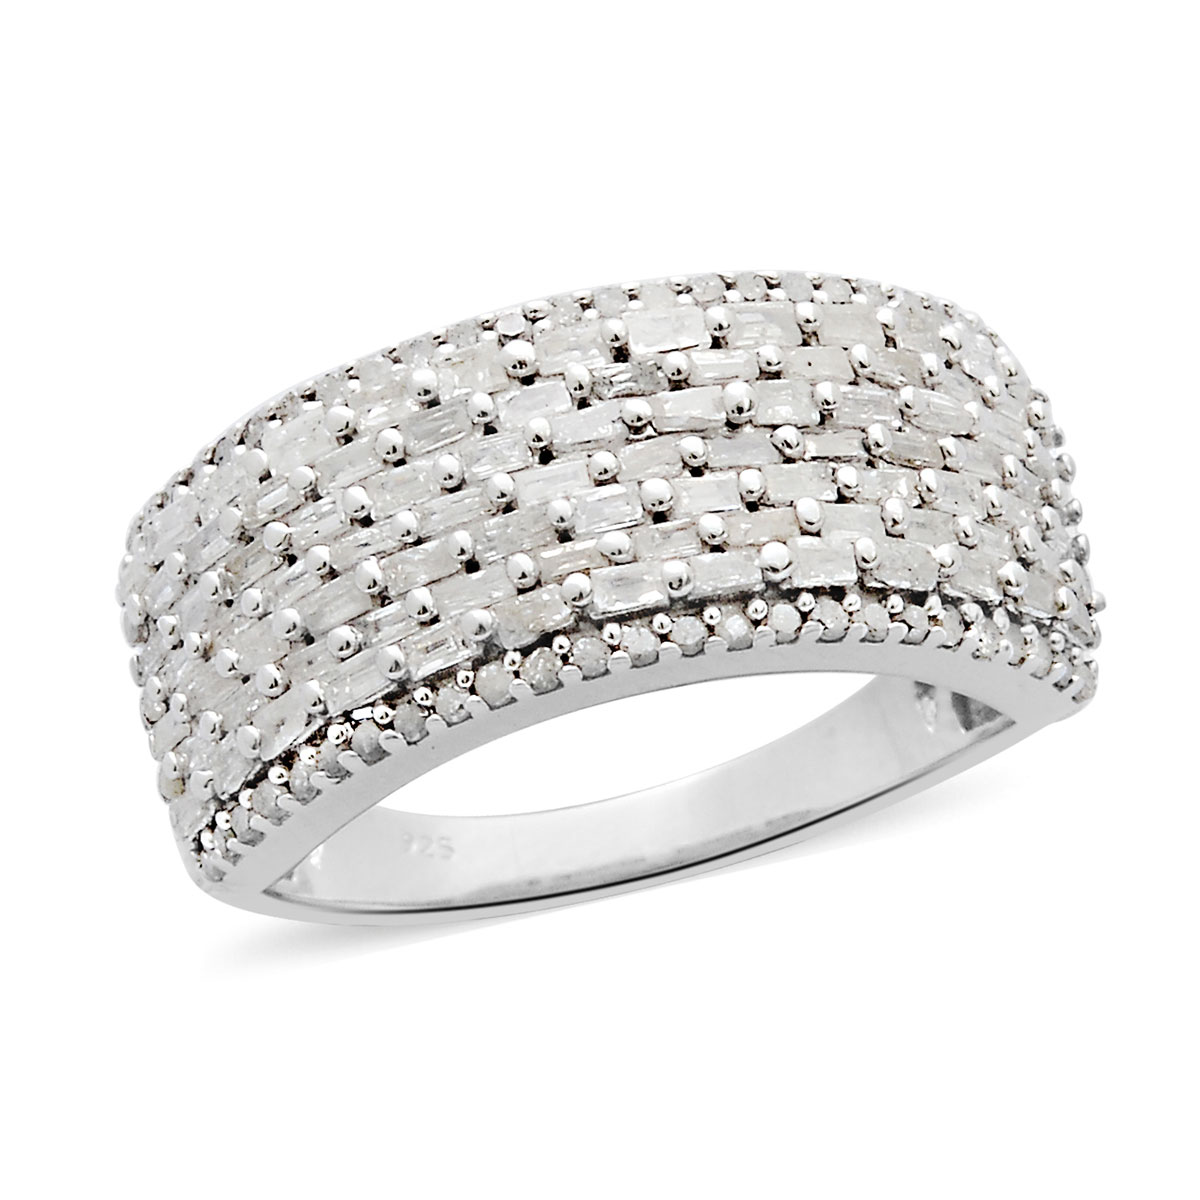 Diamond Band Ring in Platinum Over Sterling Silver (Size 10.0) 1.00 ctw